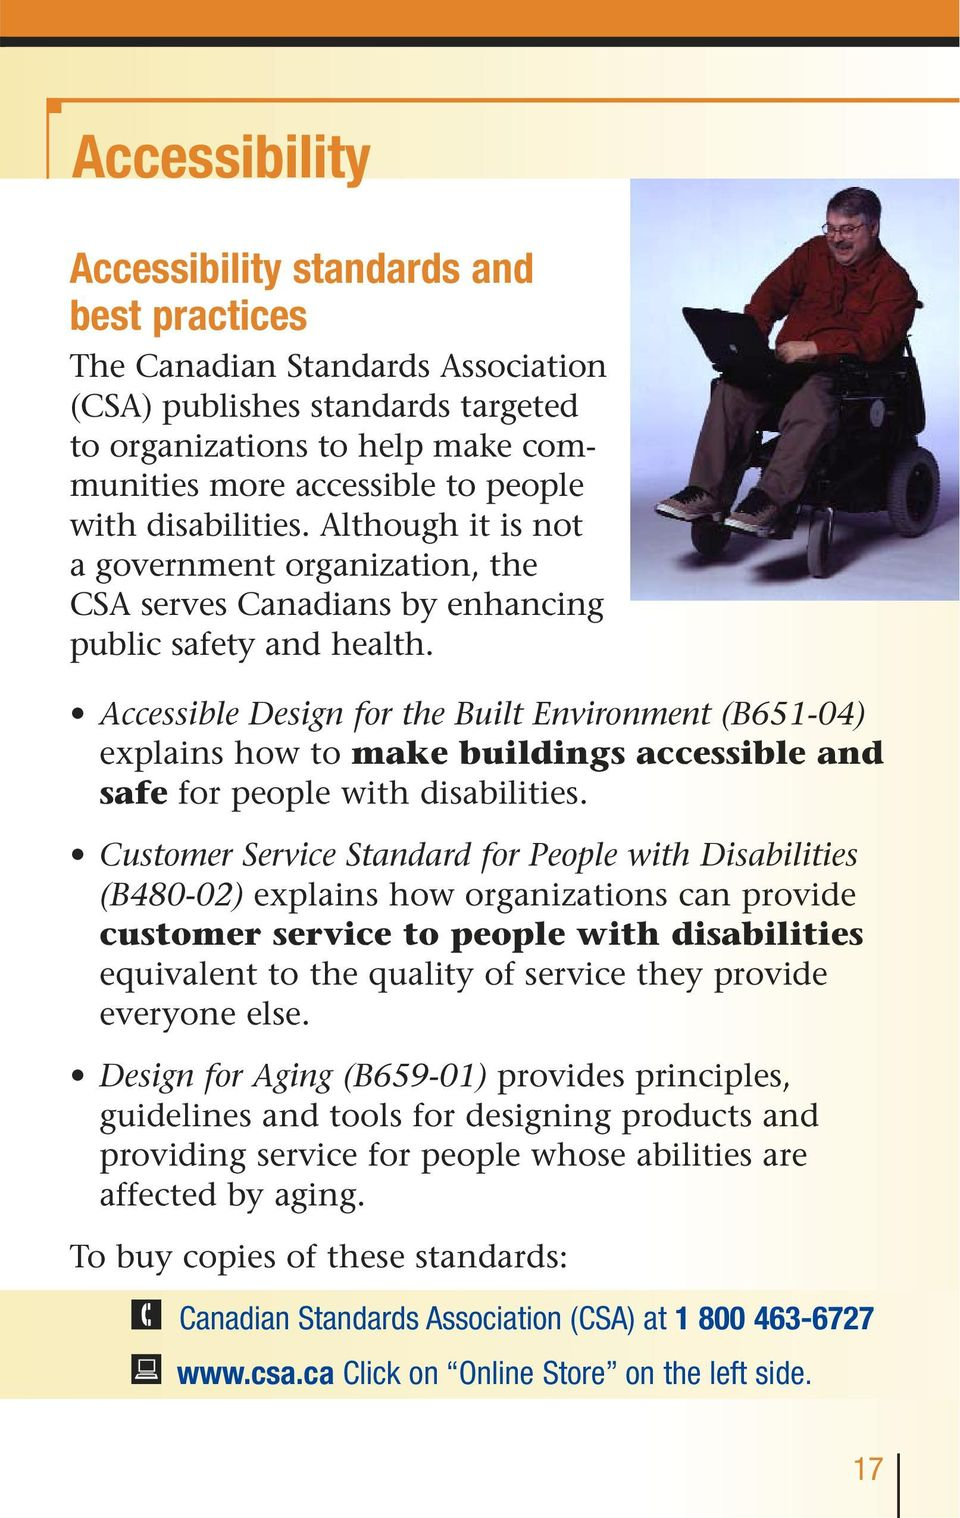 Accessible Design for the Built Environment (B651-04) explains how to make buildings accessible and safe for people with disabilities.